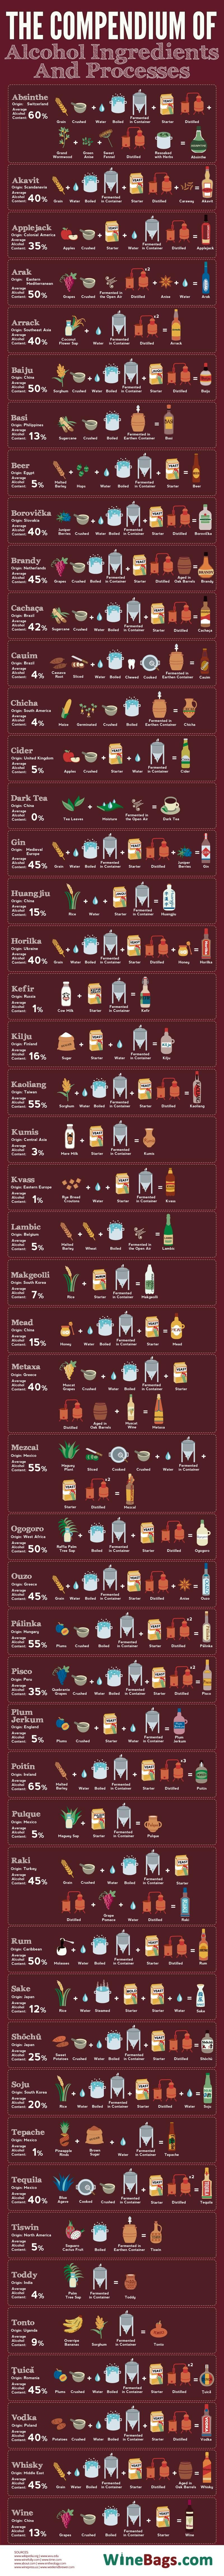 Complete Guide For Making All Of Your Favorite Booze Alcoholic Drinks Around The World Popular Alcoholic Drinks Most Popular Alcoholic Drinks